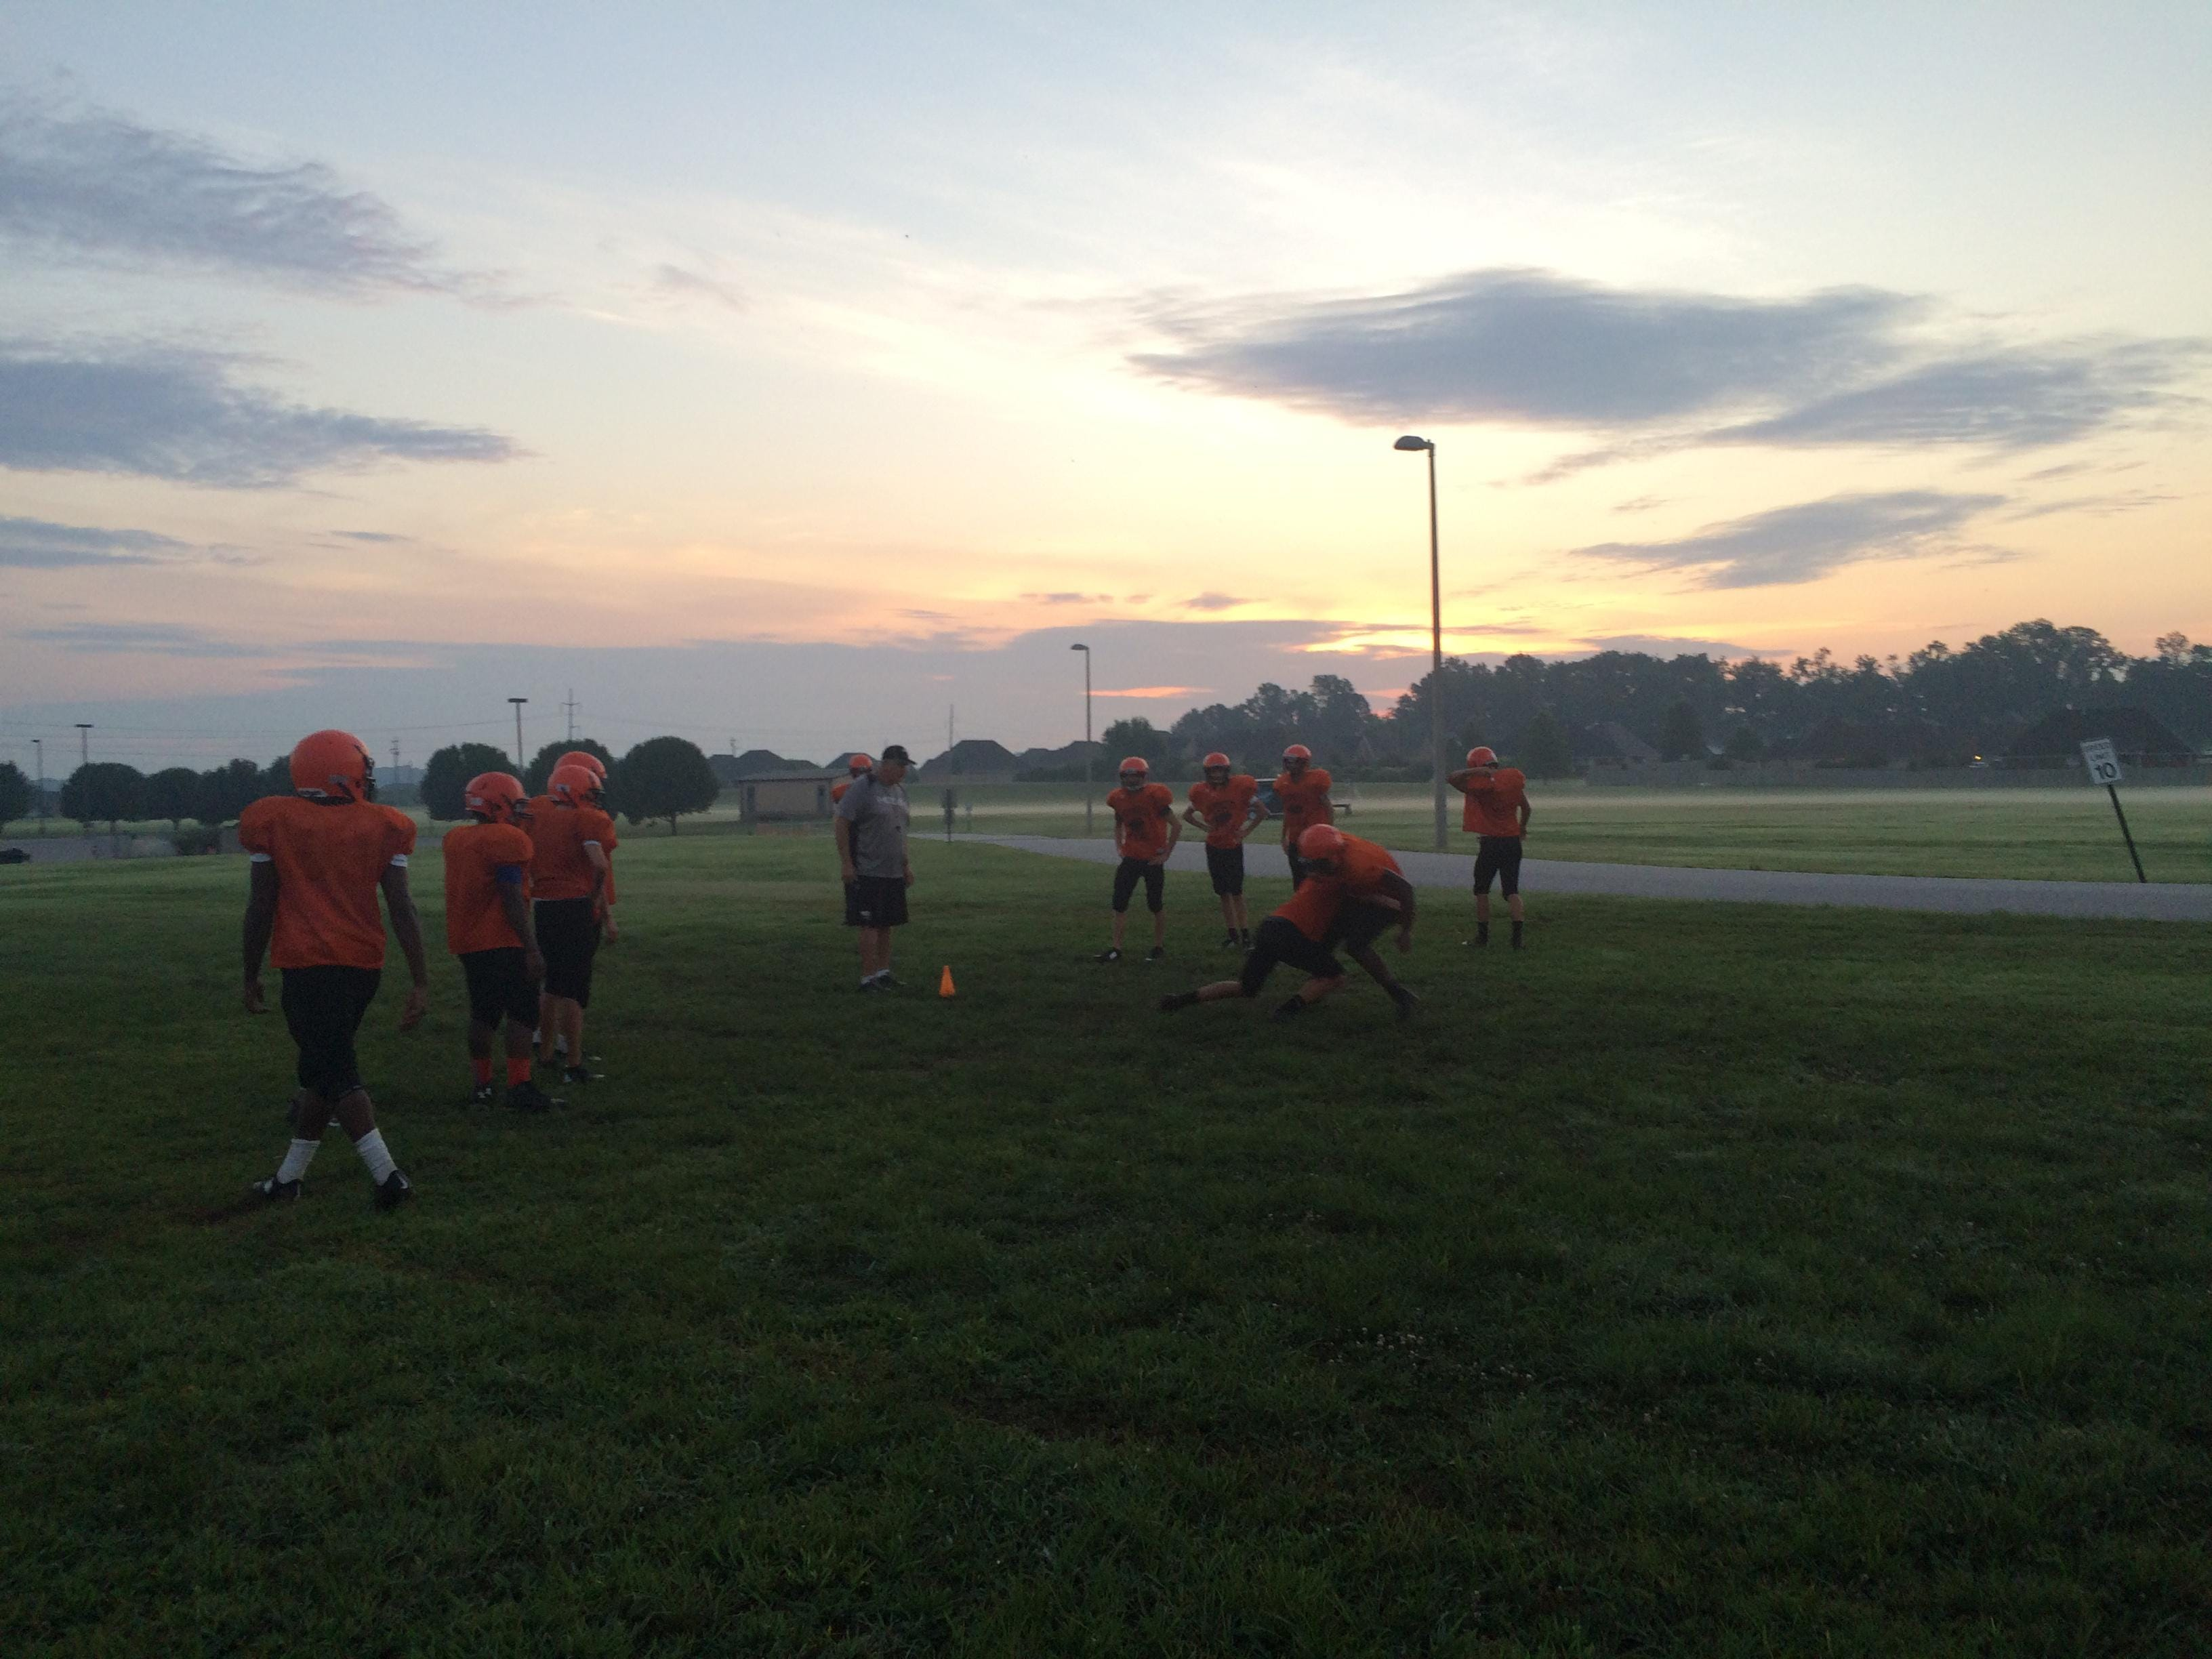 South Gibson's players line up for tackling drills before the sun has come up over Medina on Monday morning.